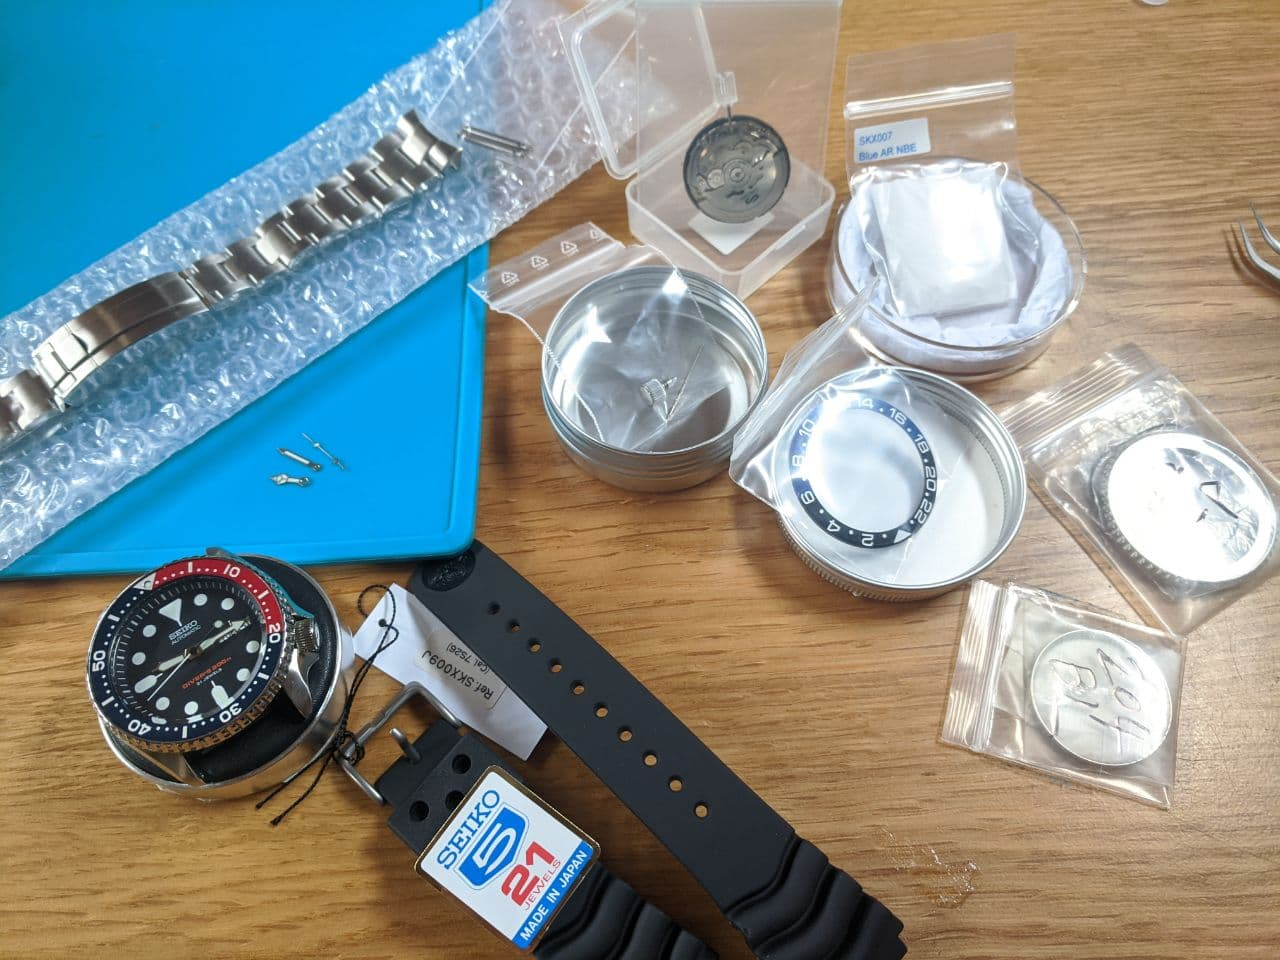 Seiko mods in the UK: Seiko SKX009J1 Dive Watch component parts for modding bezel, insert crystal movement, hands, steel chapter ring. Stainlees steel watch with diver bezel!